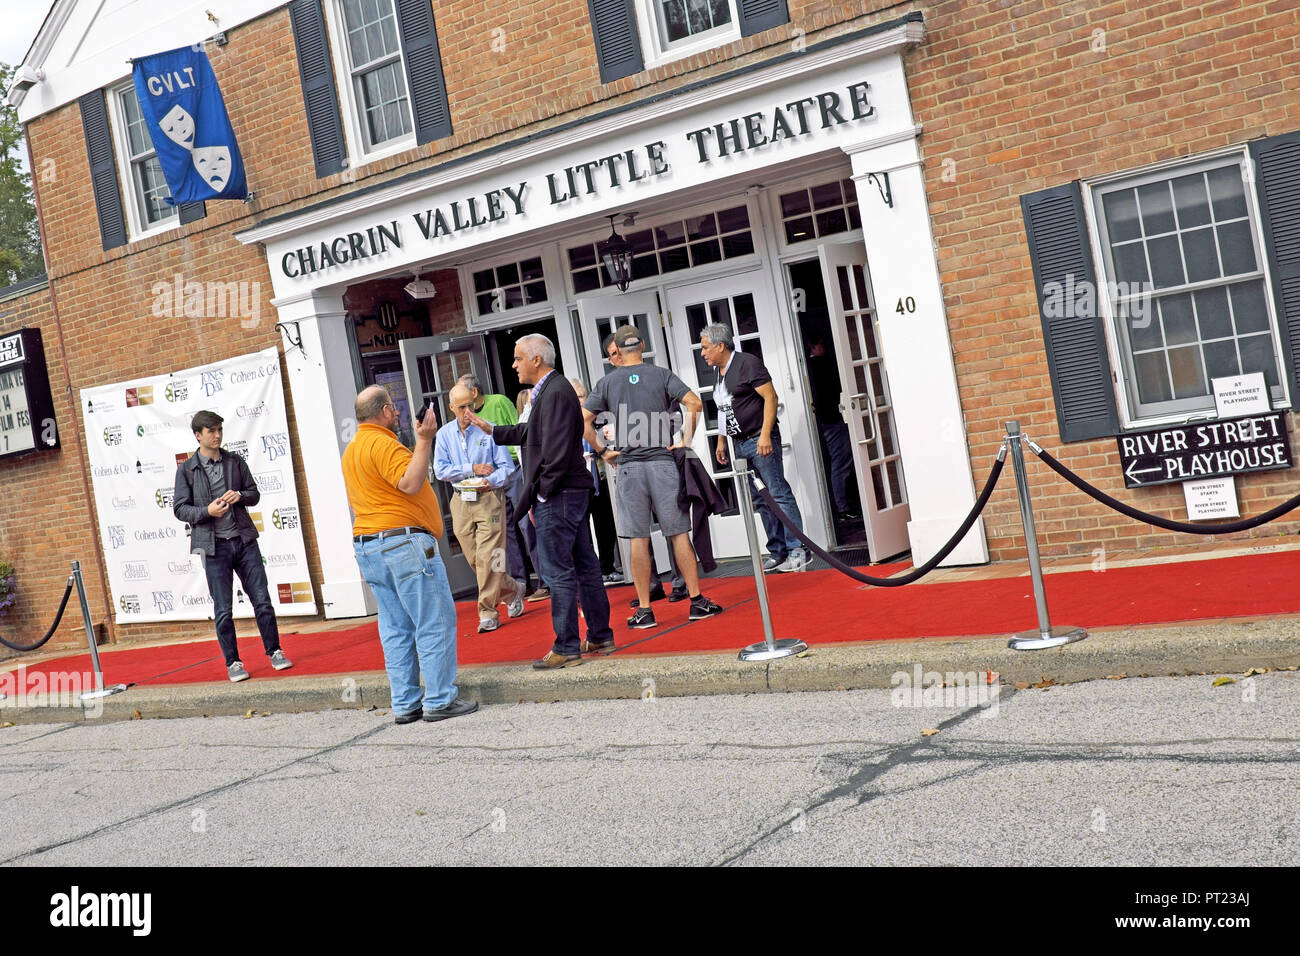 Chagrin Falls, Ohio, USA, 5th Oct, 2018. Attendees at the 9th Annual Chagrin Documentary Film Festival in Chagrin Falls, Ohio, USA gather outside one of the venues between films.  The festival runs from October 3-7, 2018 with national and international documentary film screenings shown at various venues including the Chagrin Valley Little Theatre.  Credit: Mark Kanning/Alamy Live News. - Stock Image